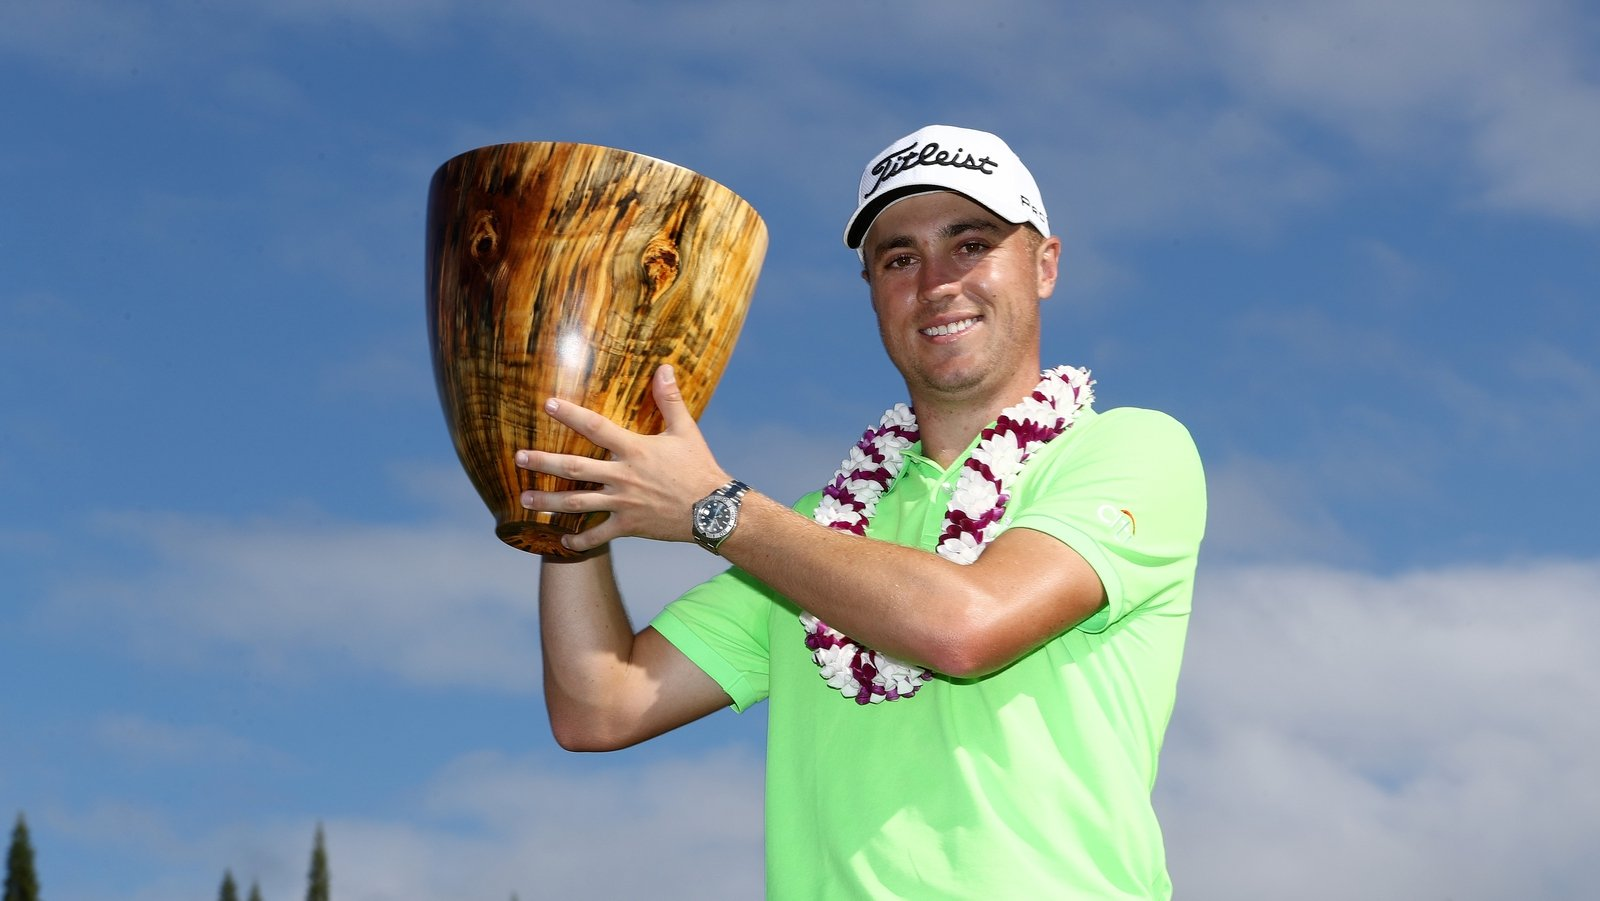 Justin Thomas claims Tournament of Champions win